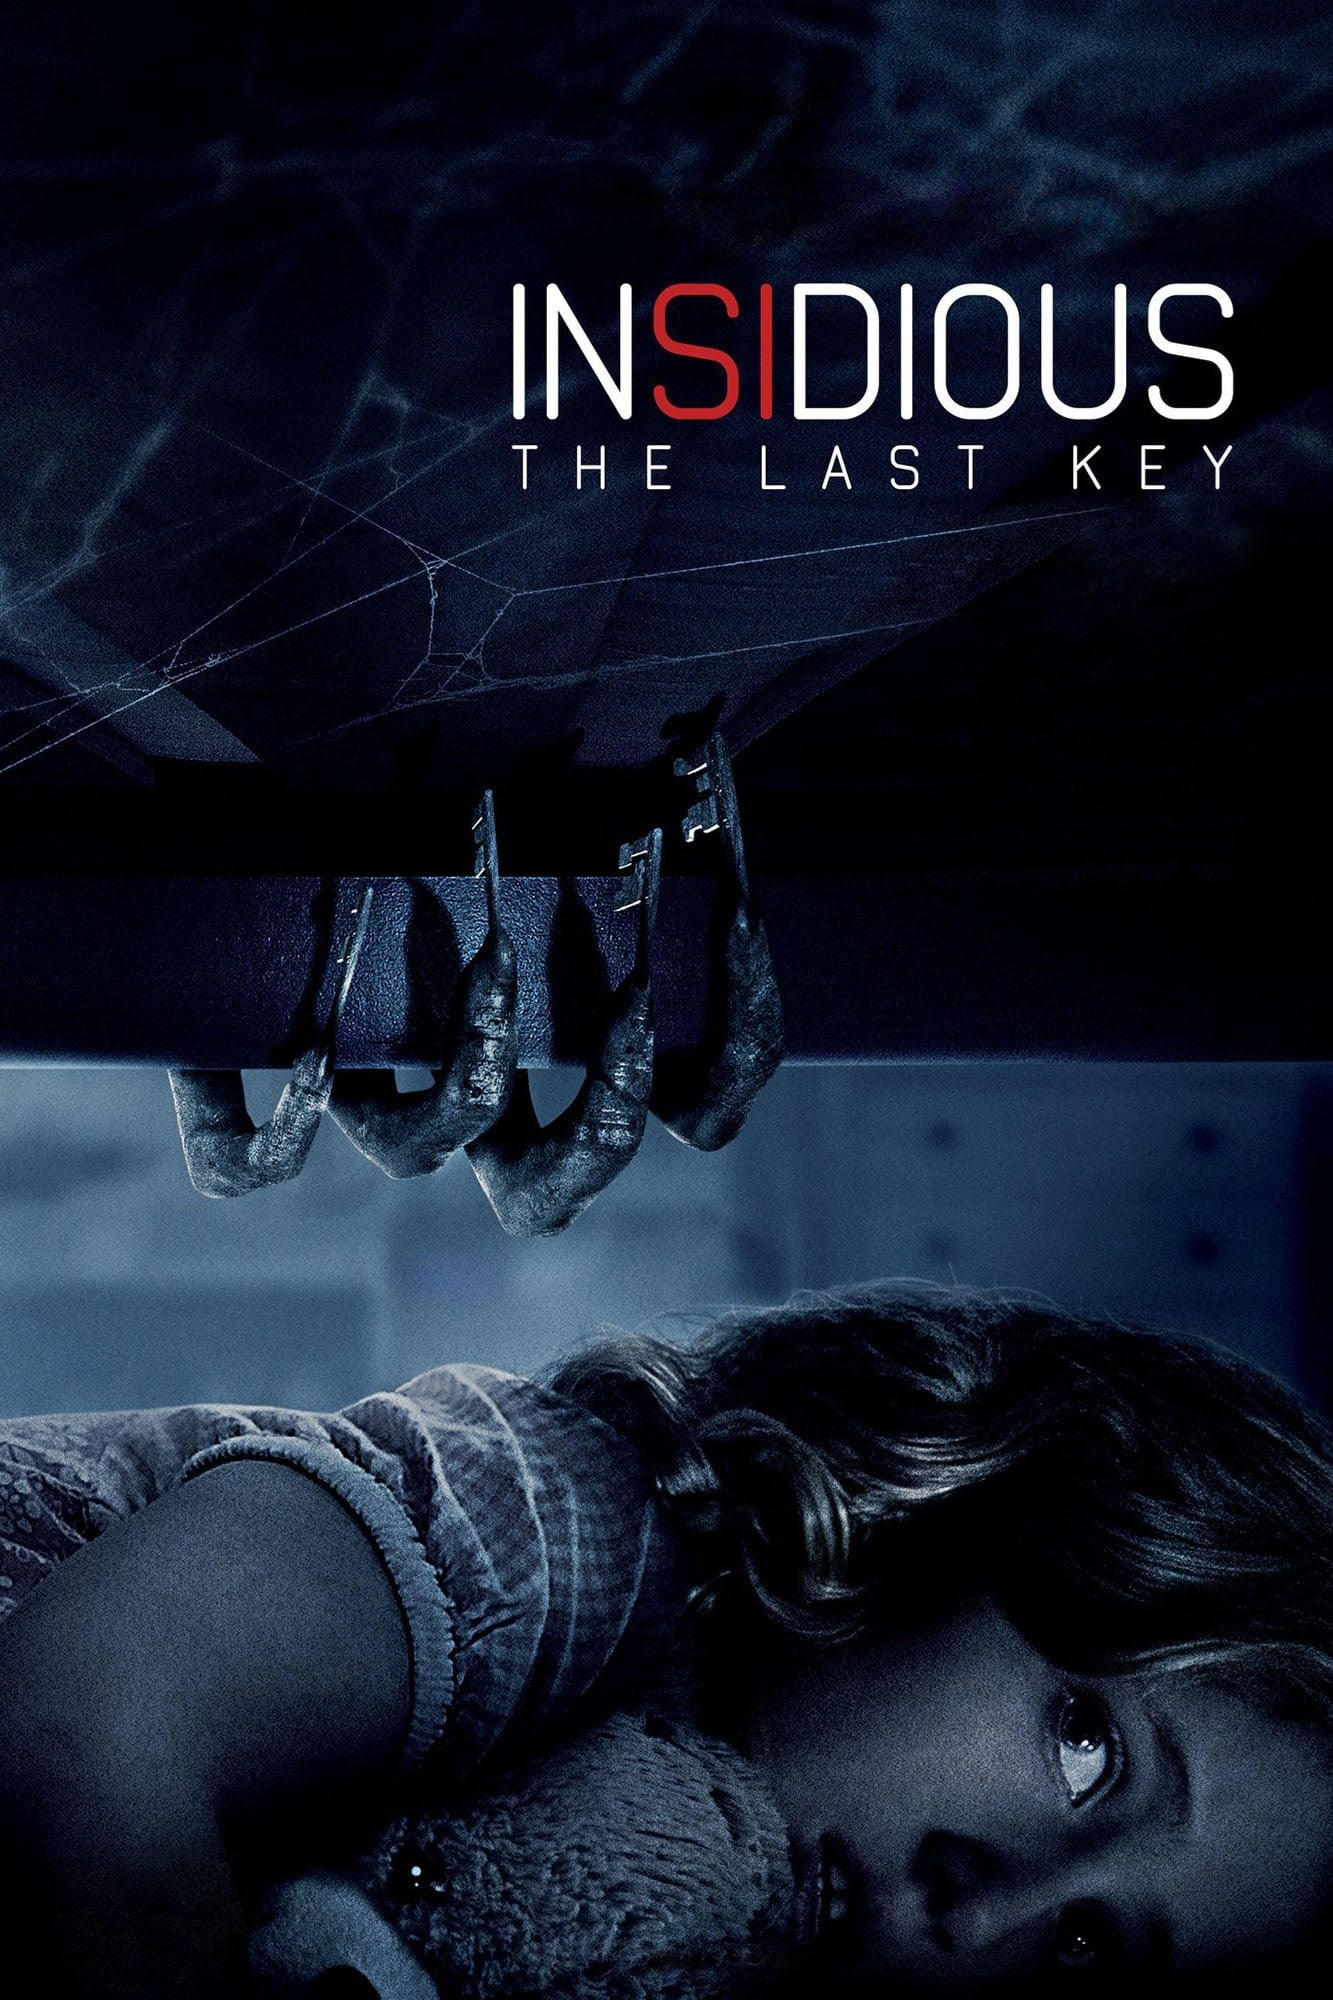 Insidious 4: The Last Key (2018) Subtitle Indonesia